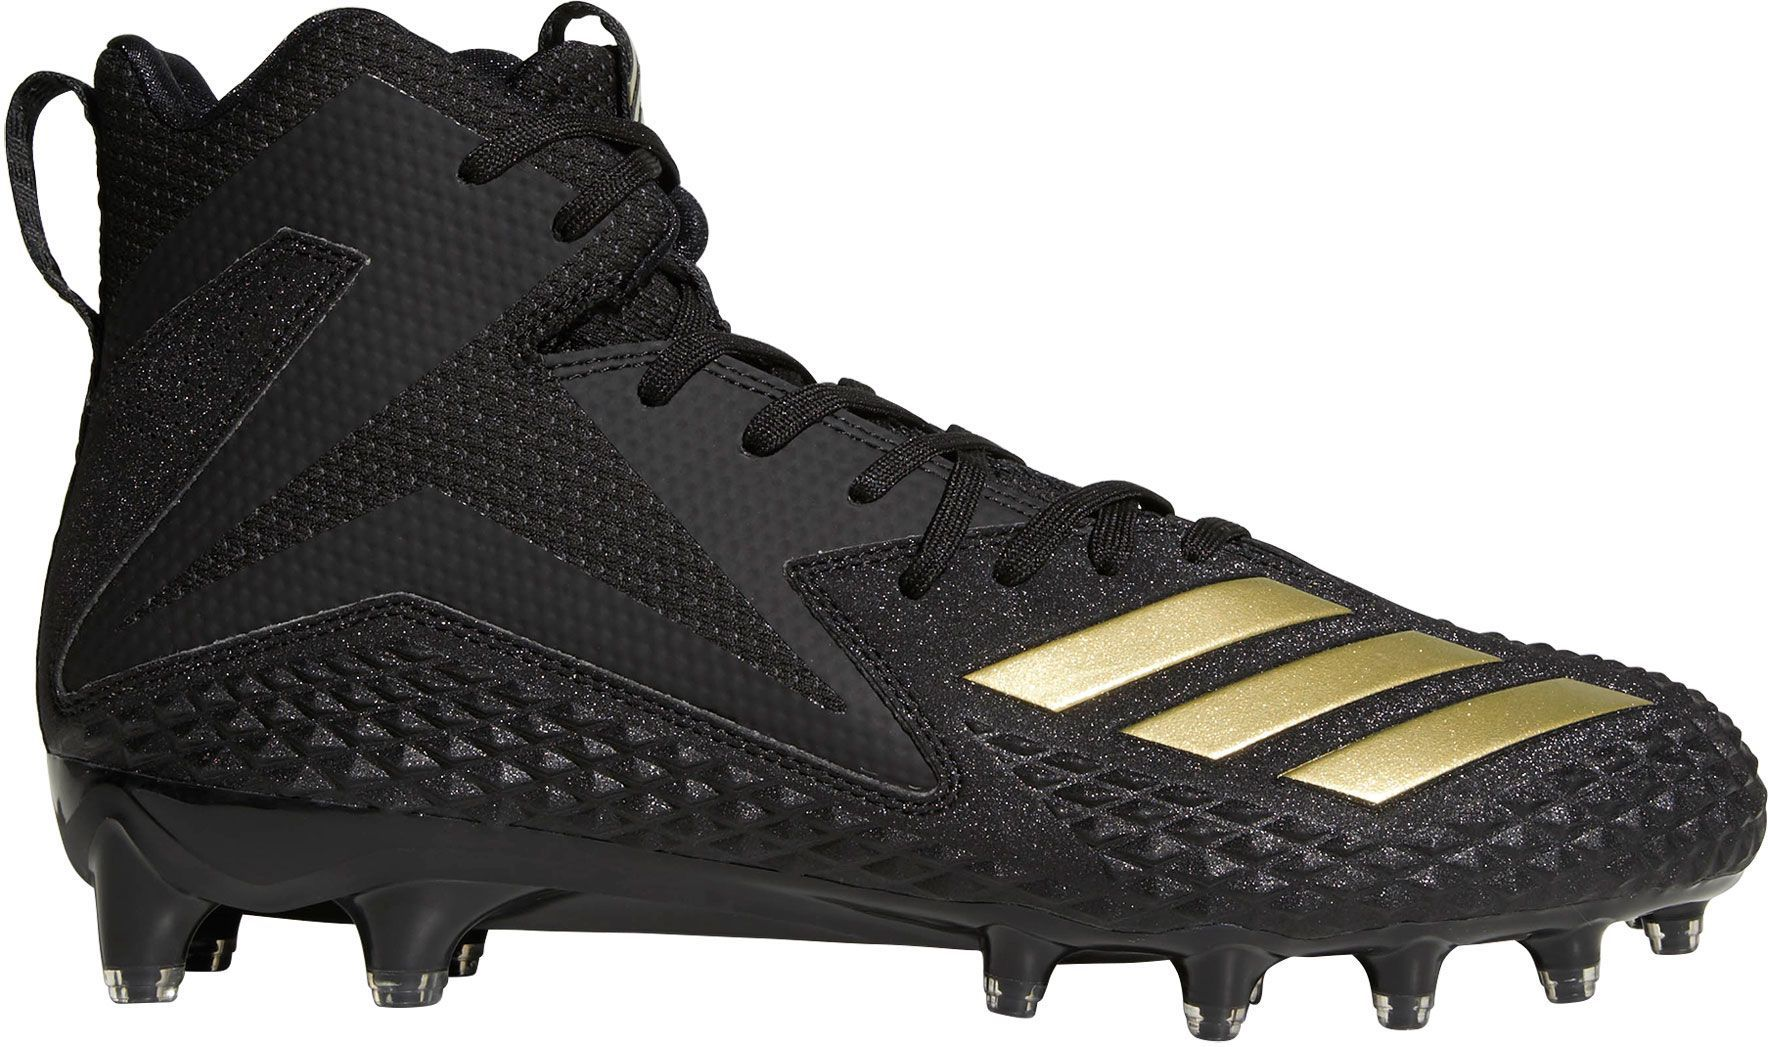 53e8eda20f2 adidas Men s Freak X Carbon Mid Football Cleats